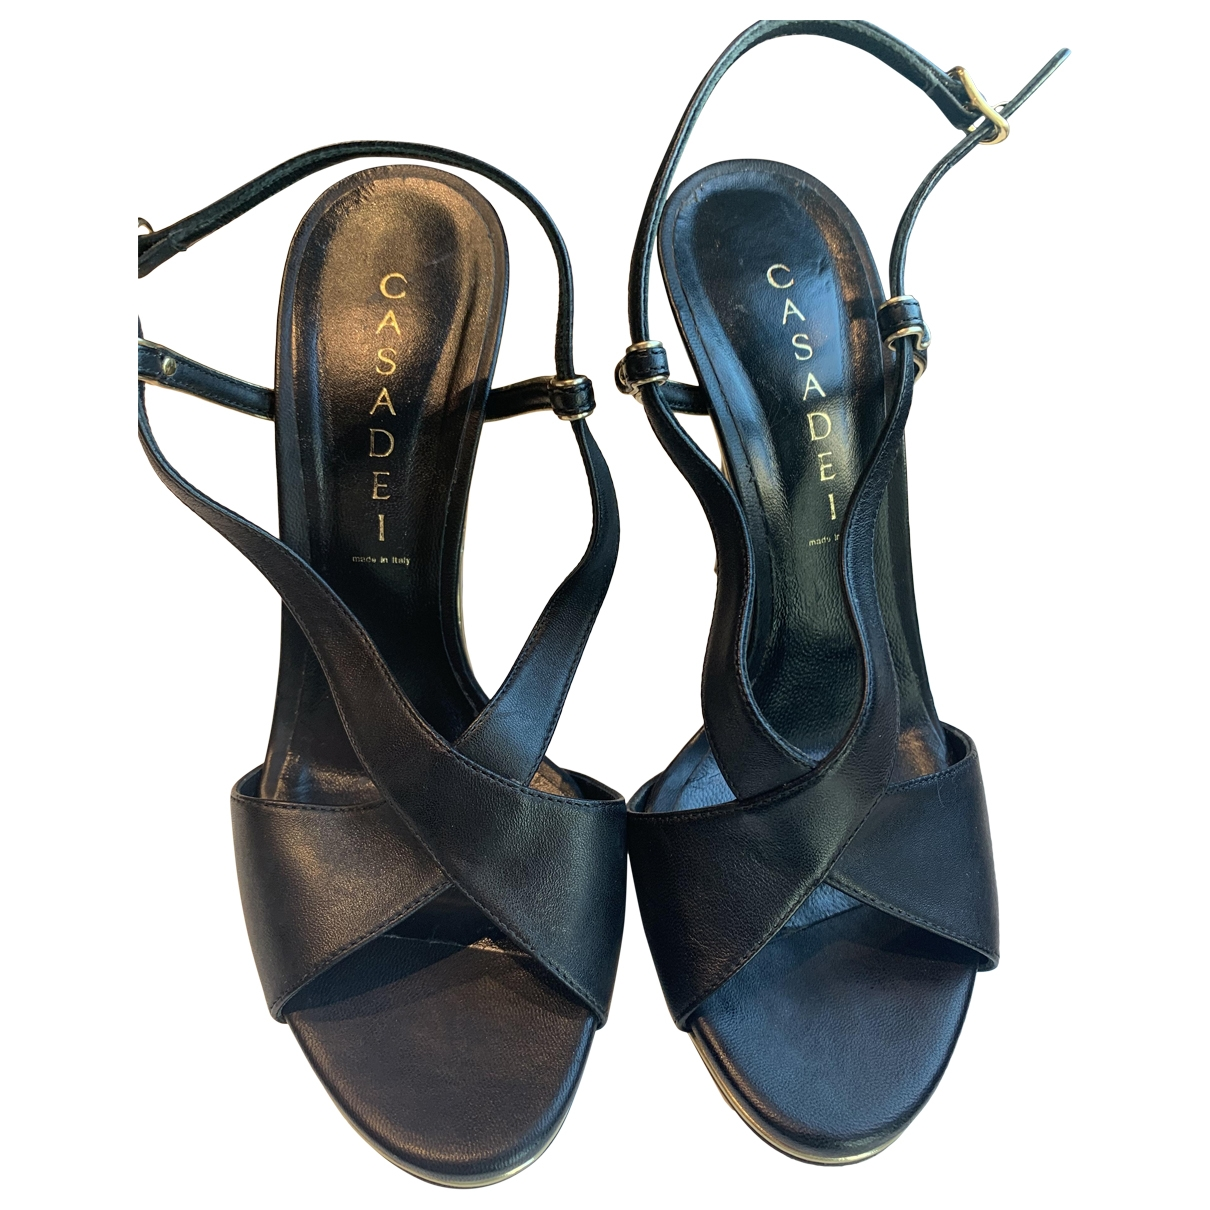 Casadei \N Black Leather Sandals for Women 37.5 IT